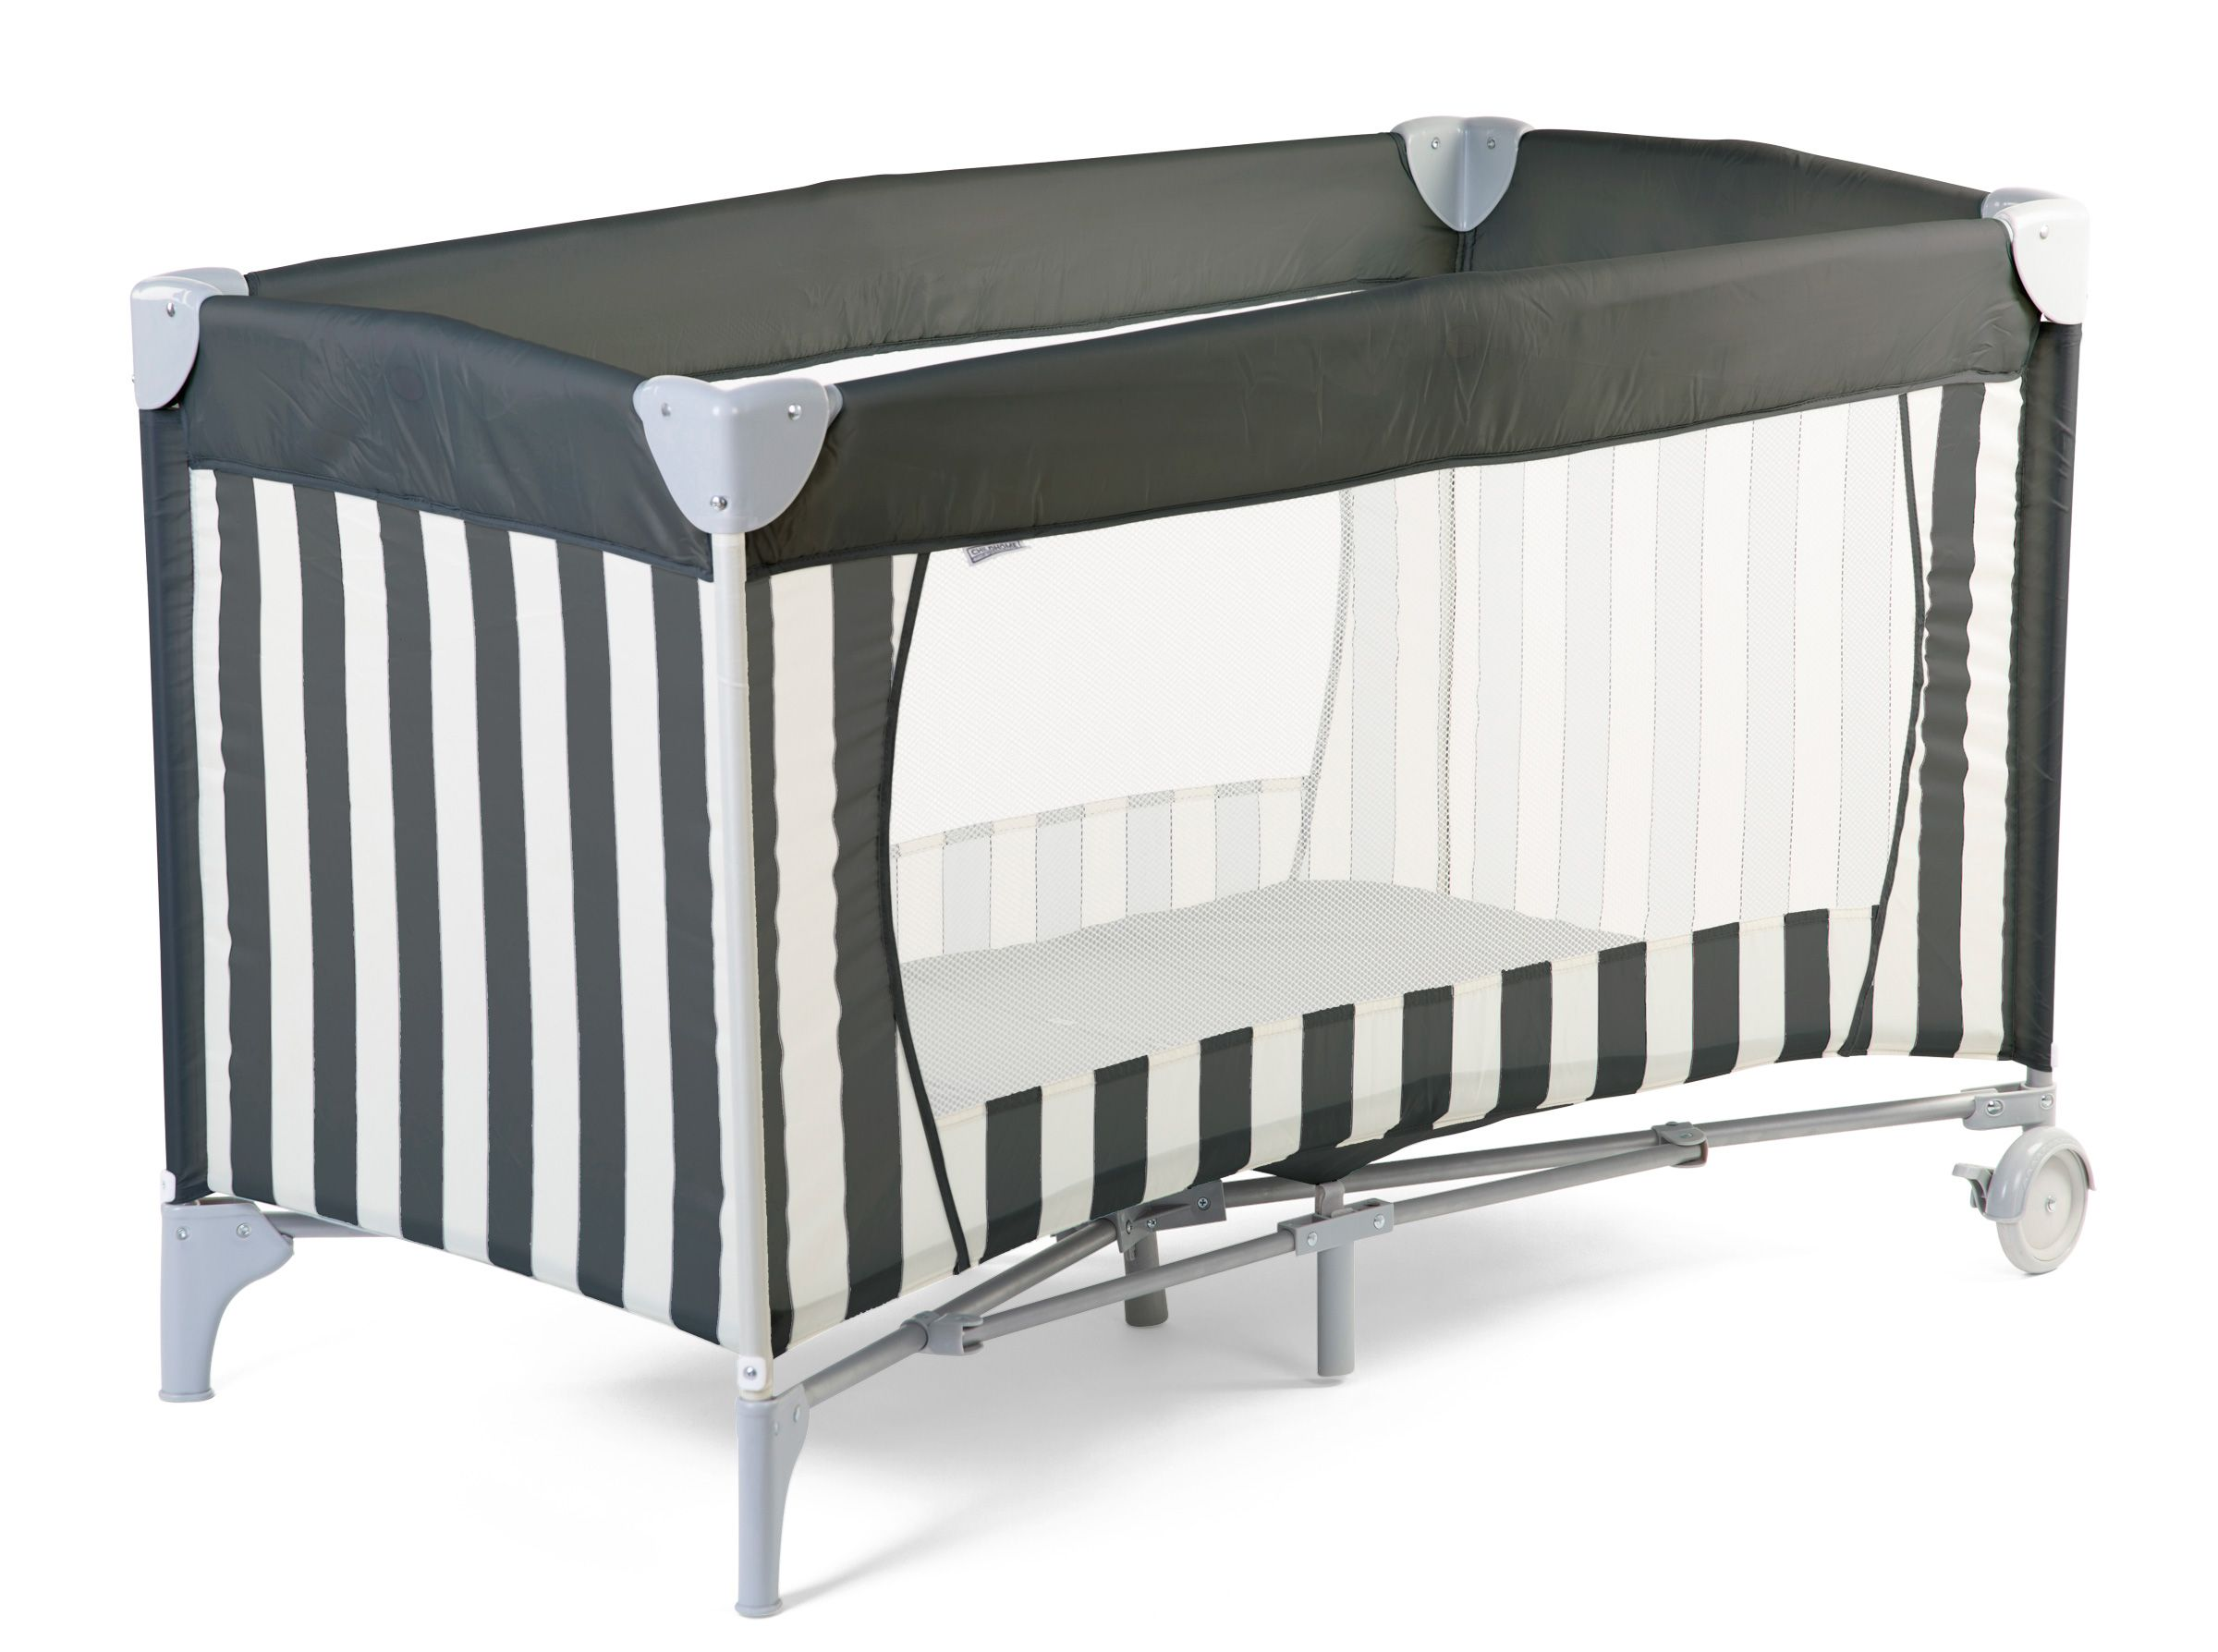 Travel Cot Bed - 2 Bottoms - 60x120 Cm - Canvas - Grey in 2020 | Cot  bedding, Travel cot, Thin mattress